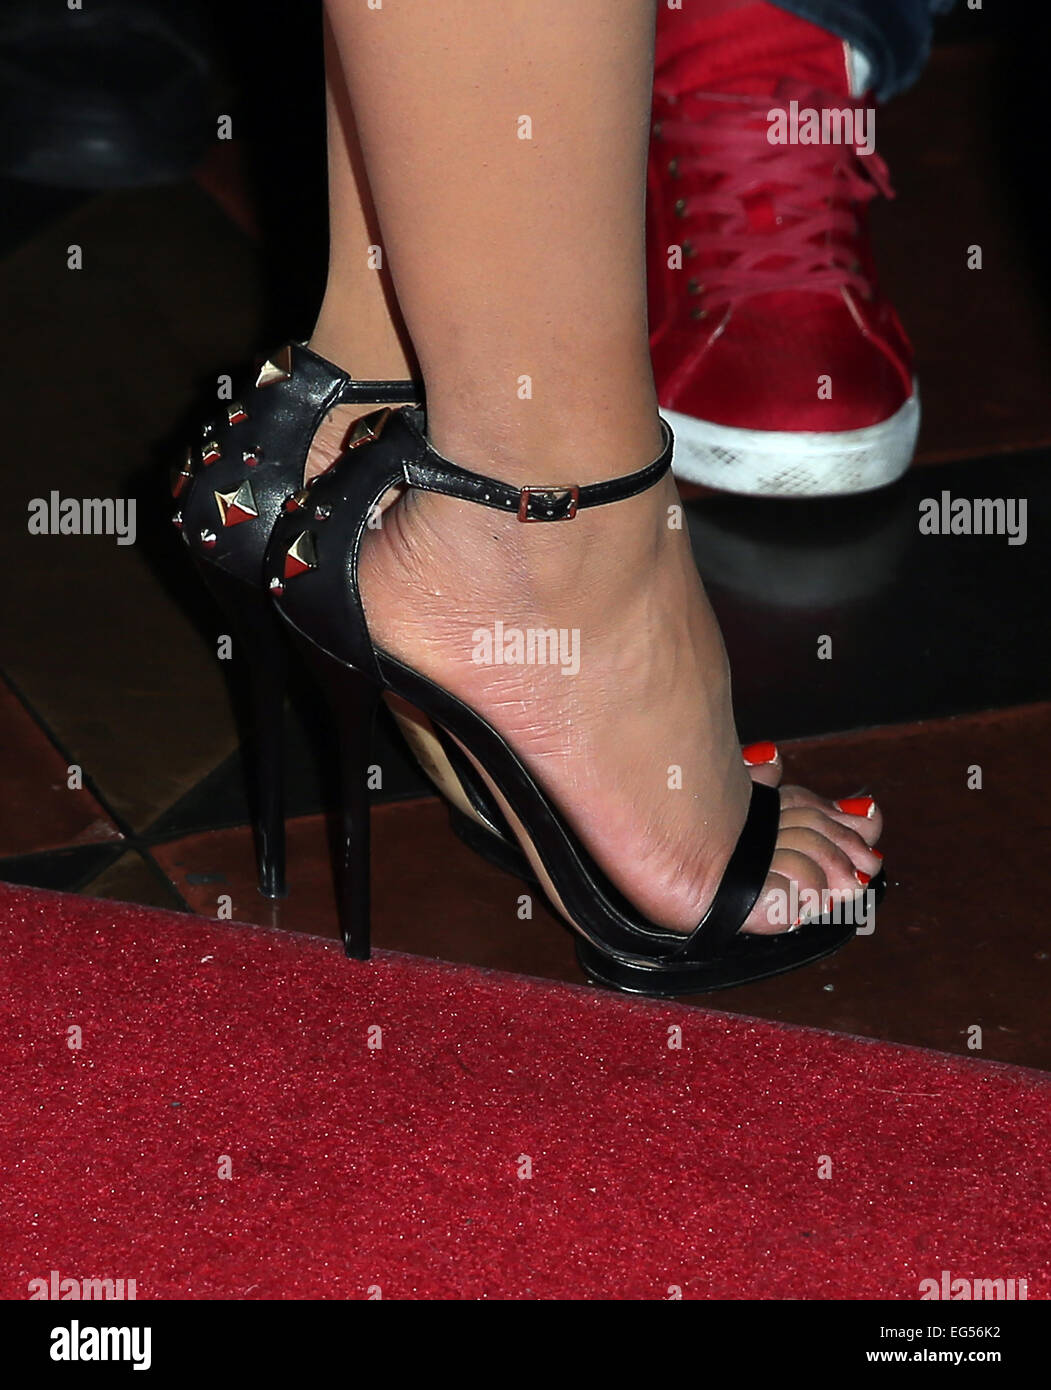 Feet Tinashe nudes (55 foto and video), Ass, Hot, Boobs, cleavage 2006